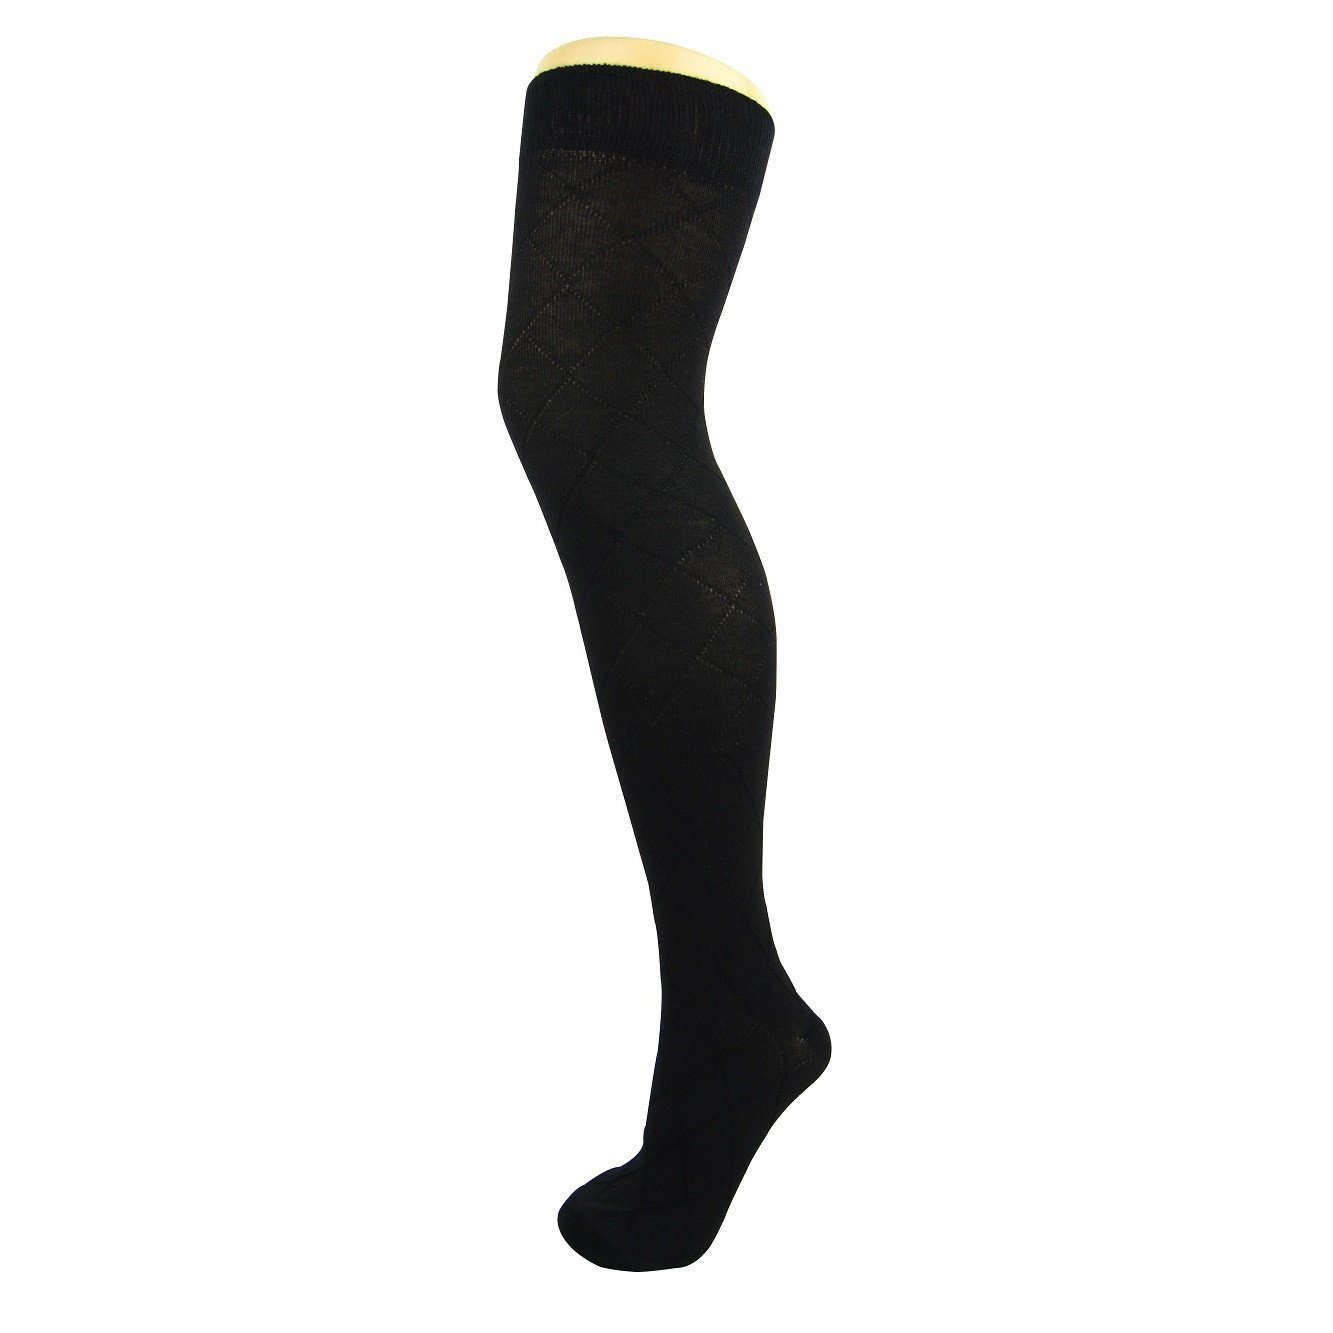 Cotton Blend Criss Cross Over The Knee Socks - Leggsbeautiful